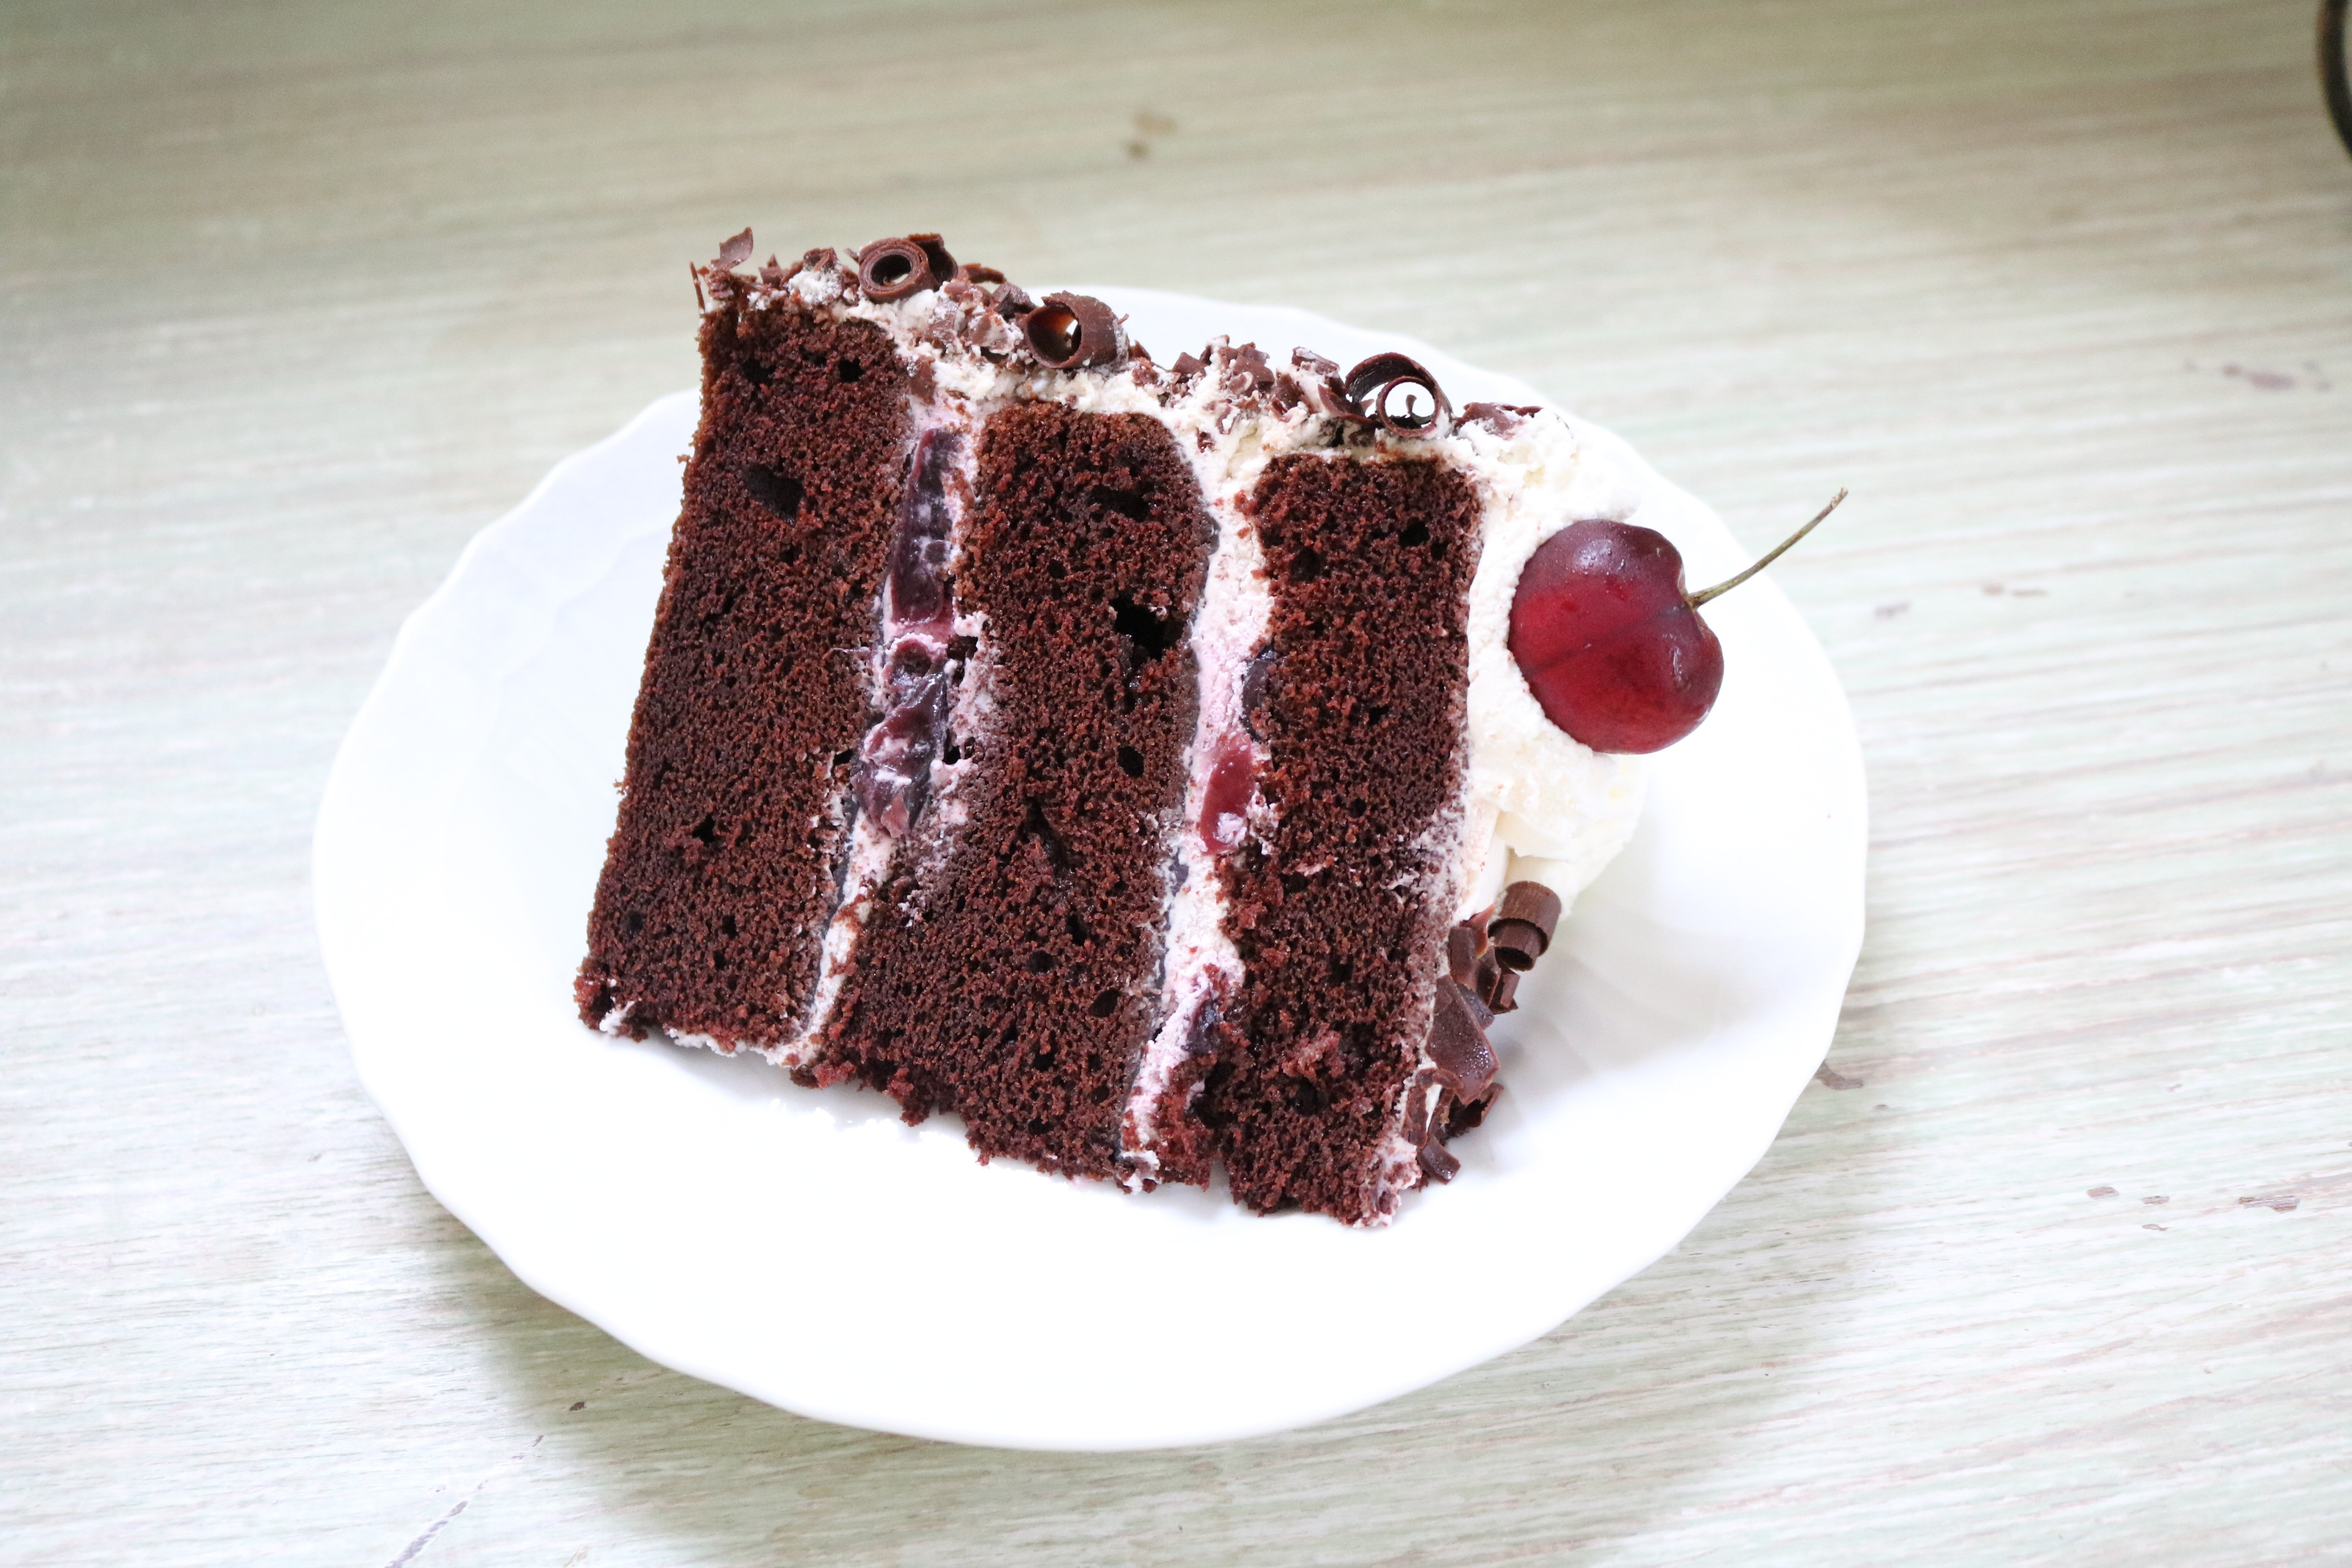 This Black Forest Cake From Scratch is the Best! Chocolate cake infused with Cherry Liqueur and filled with whipped cream and cherries!